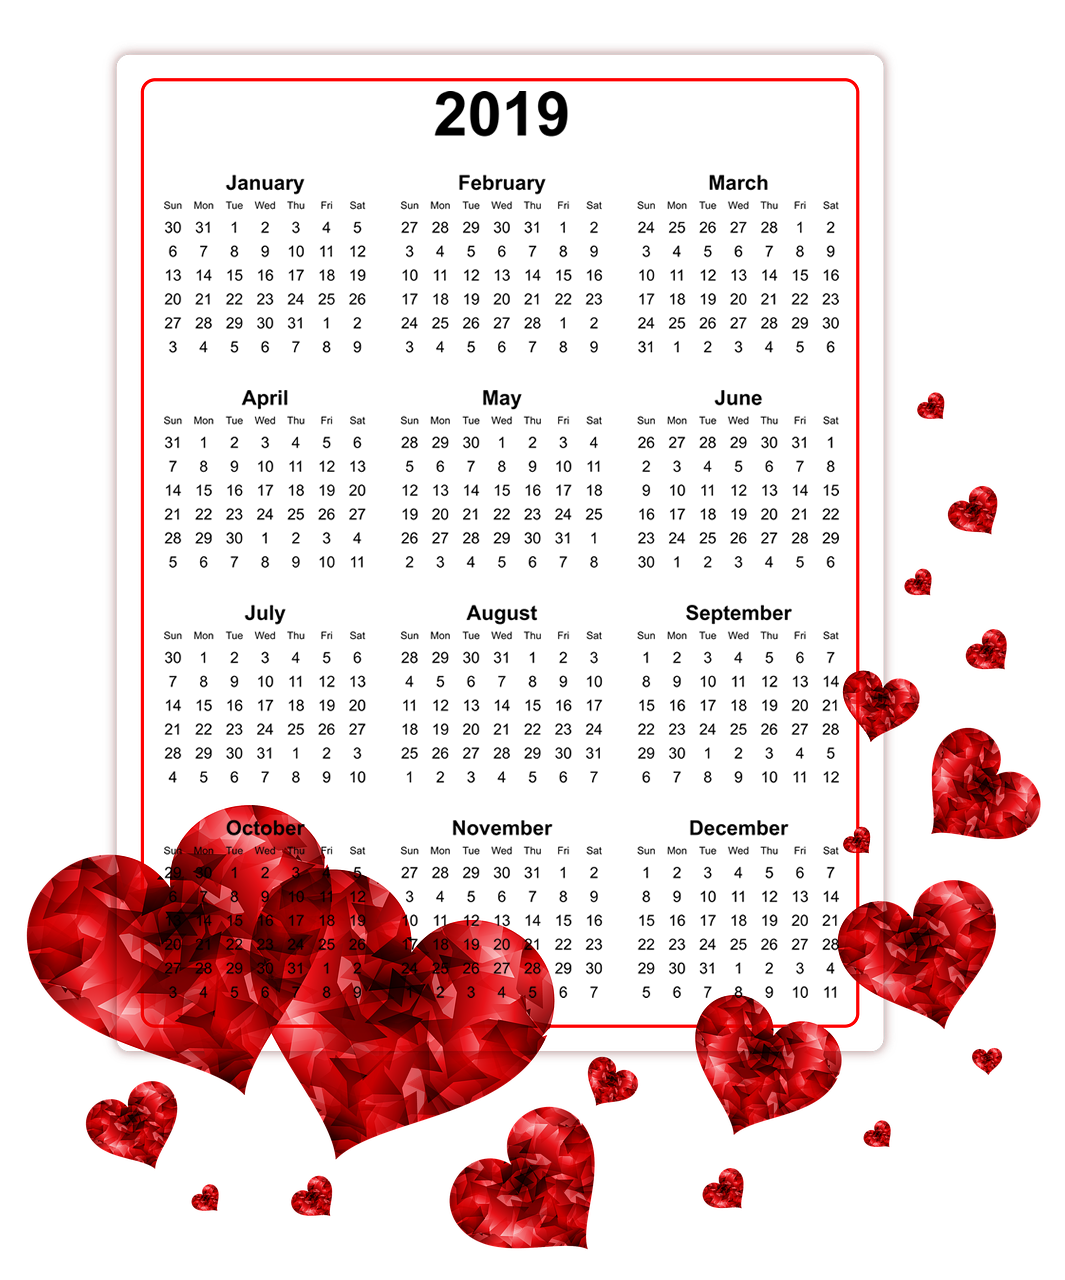 Download 2019 Printable Calendars.png.